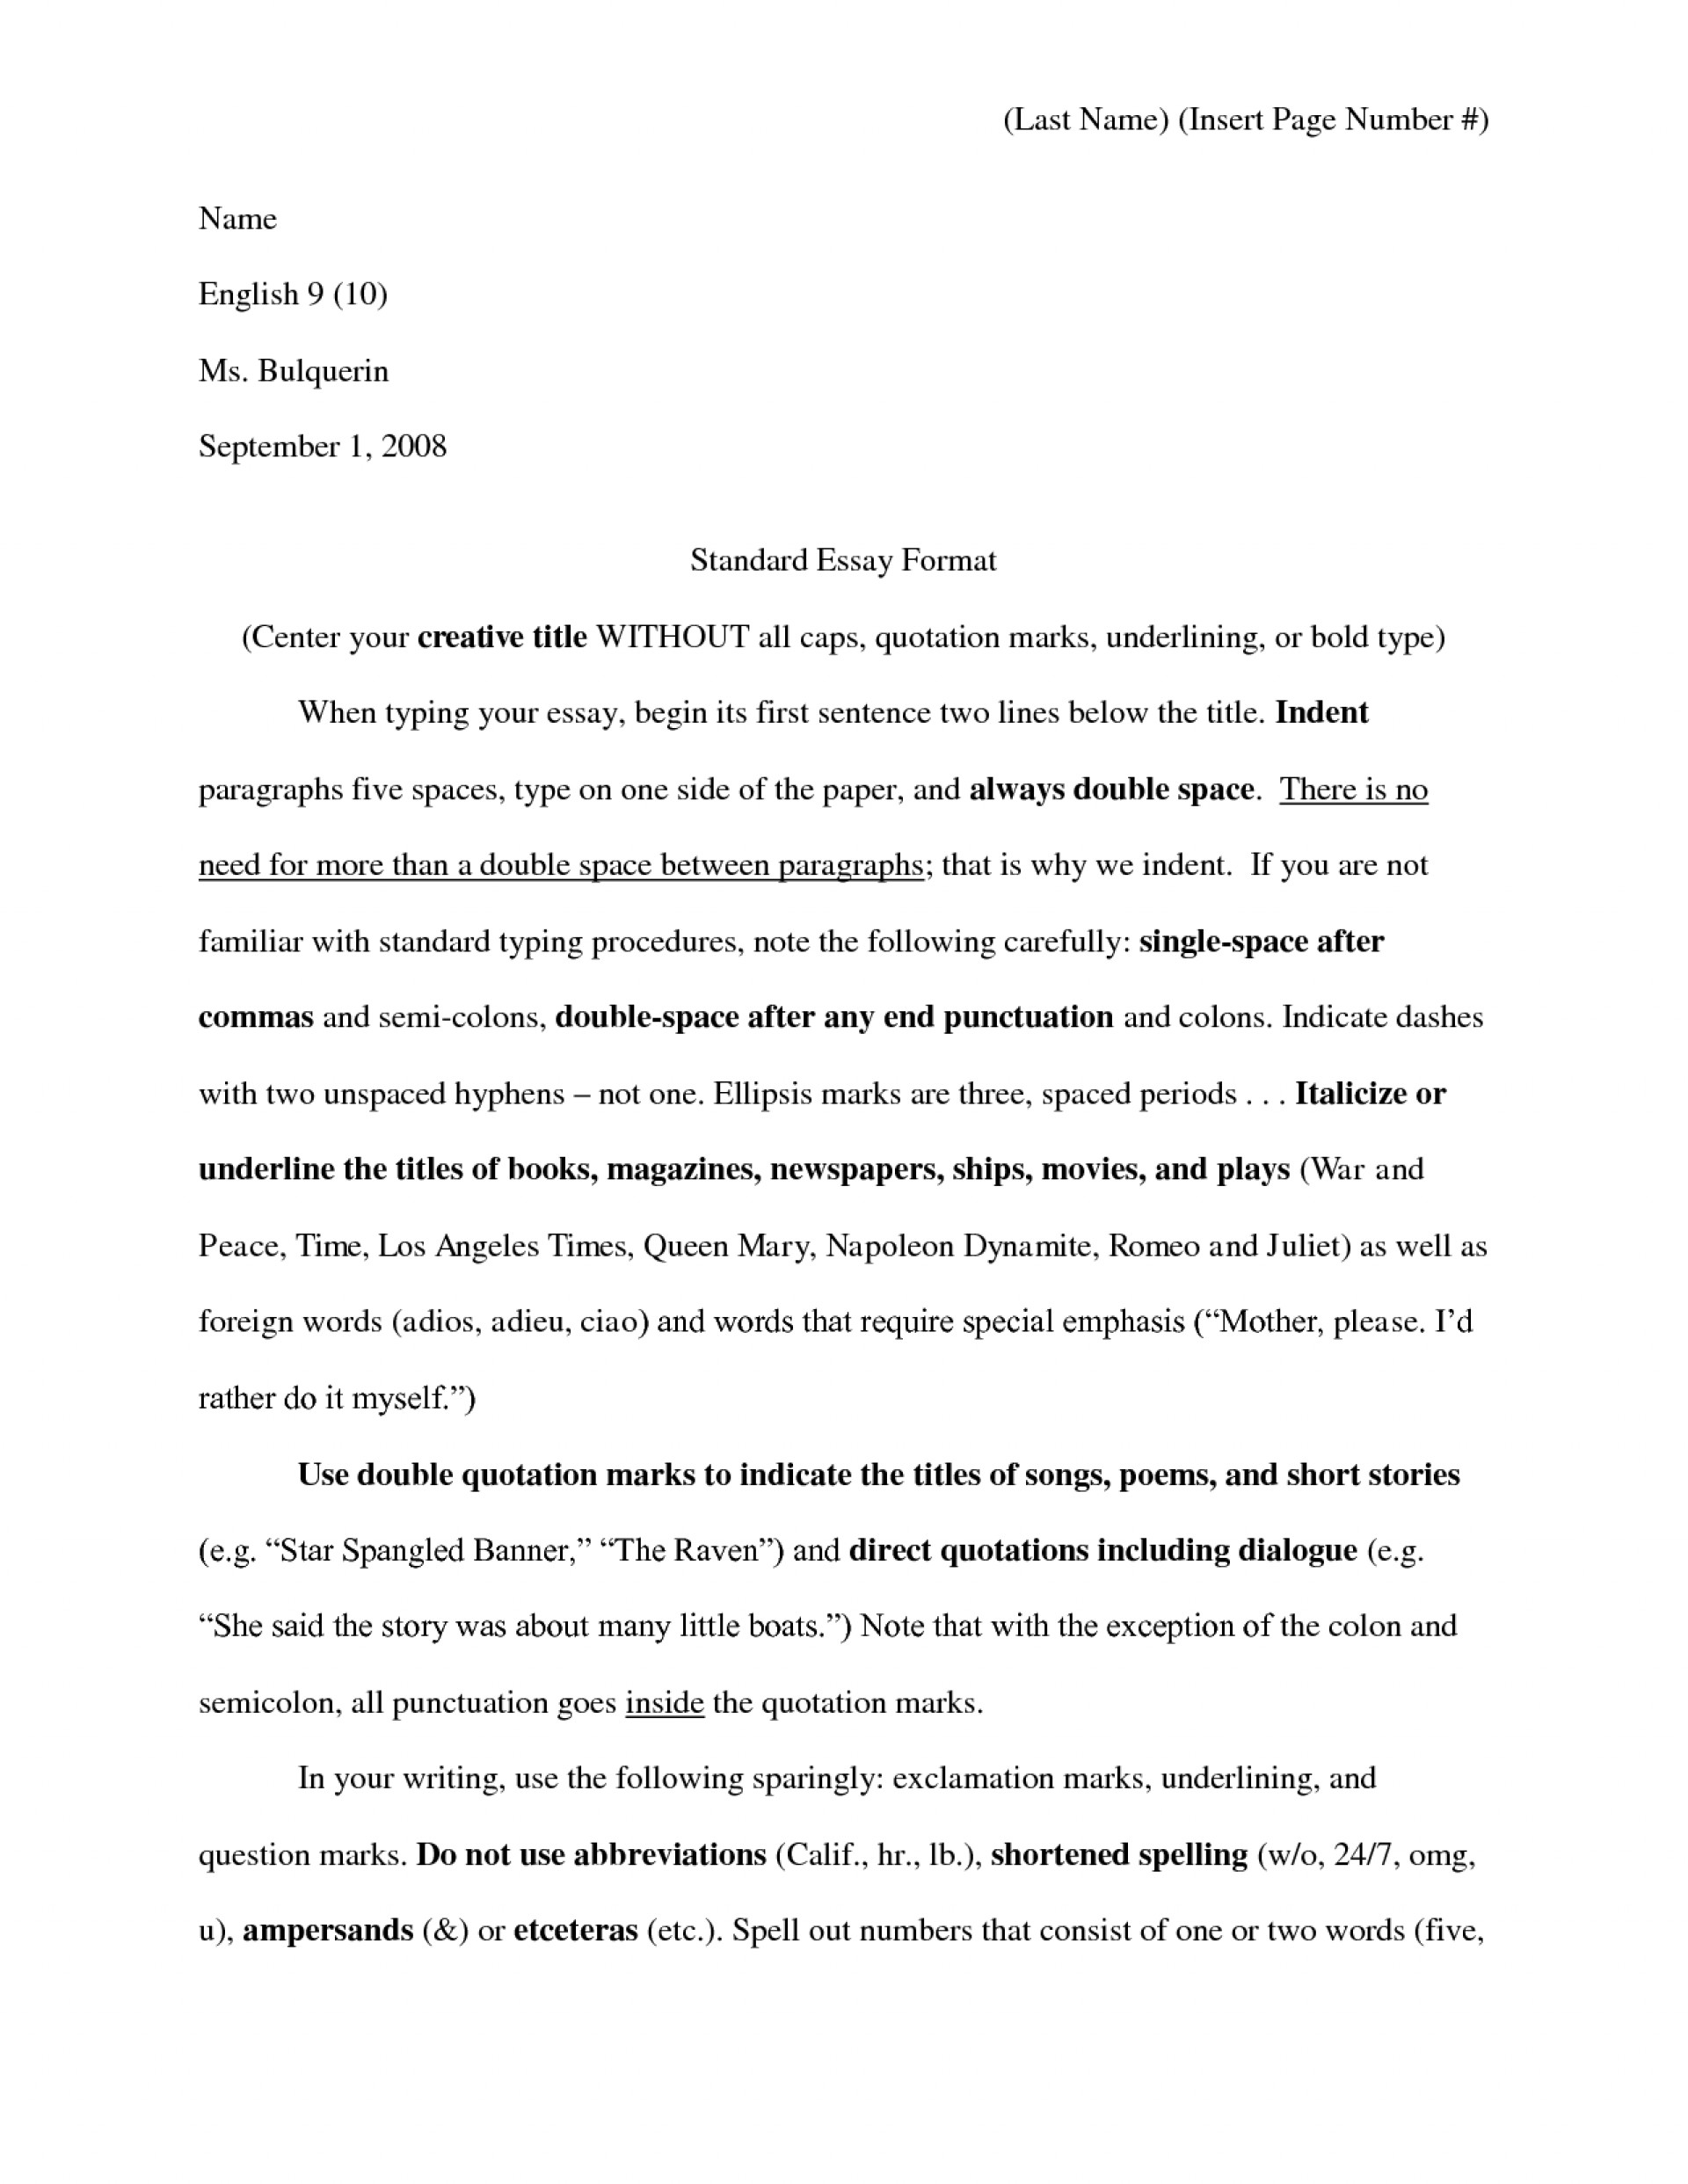 004 Standard Essay Format Example Impressive For College Apa Essay/report Ielts 1920